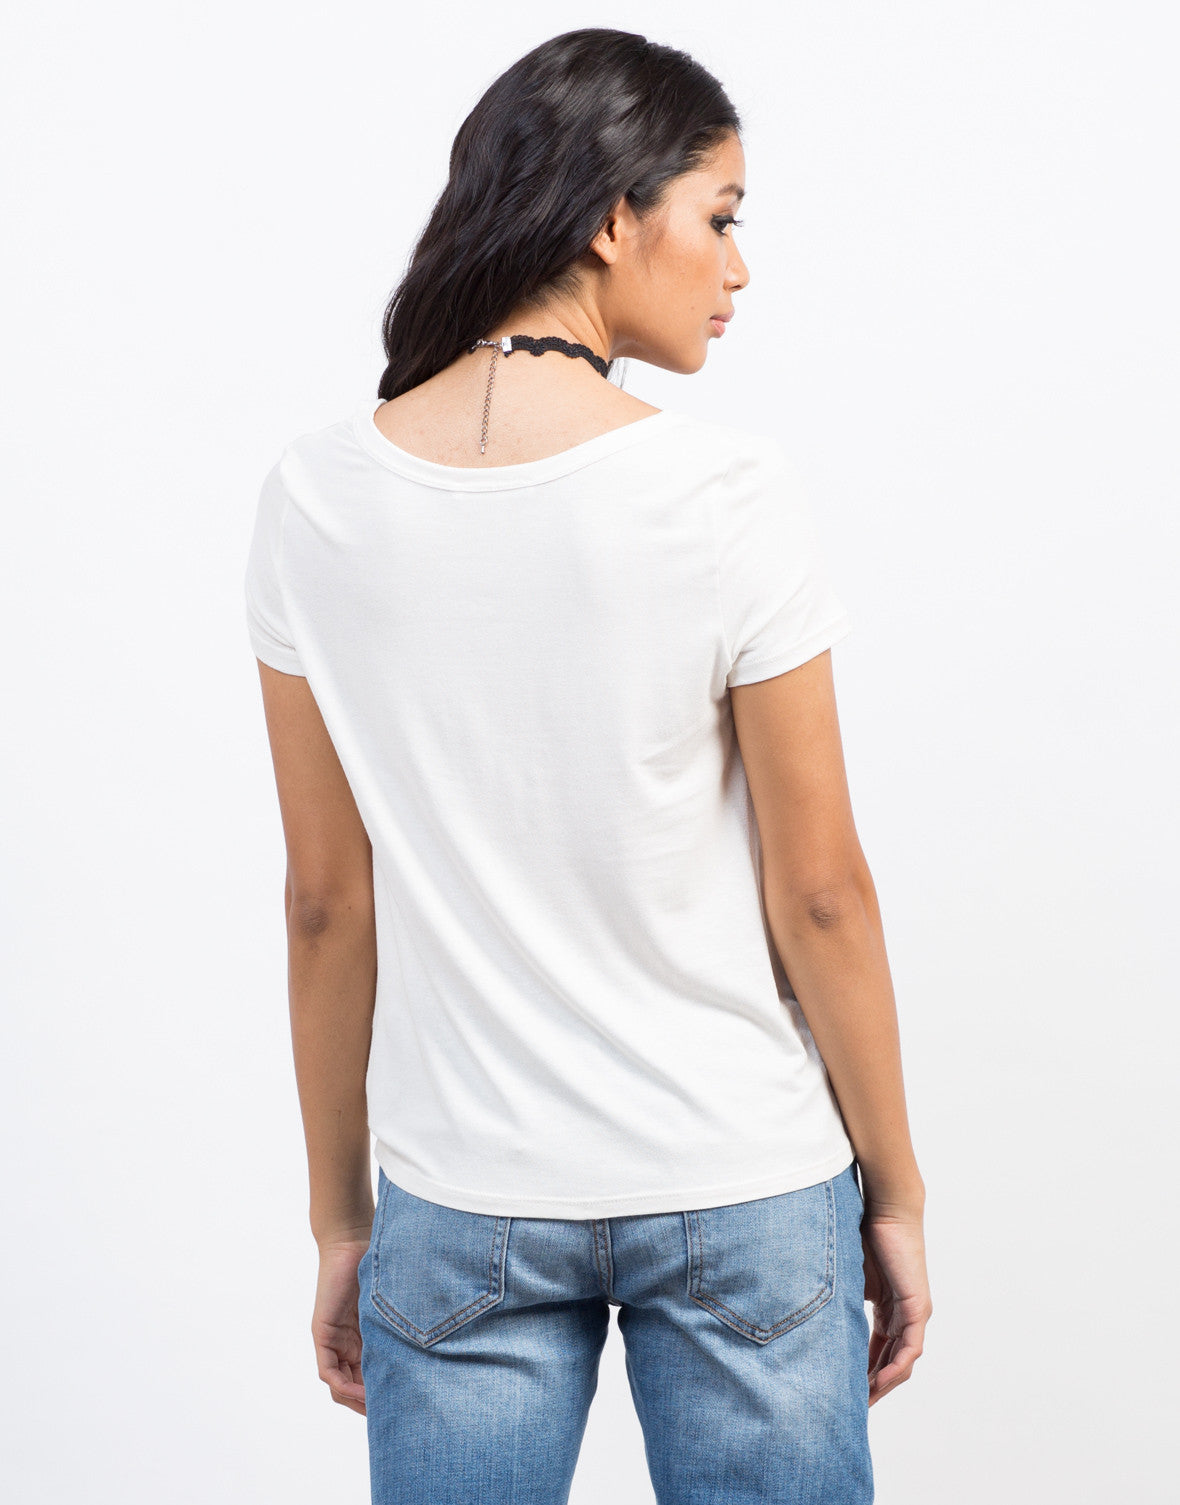 Back View of Soft Cut Out Tee